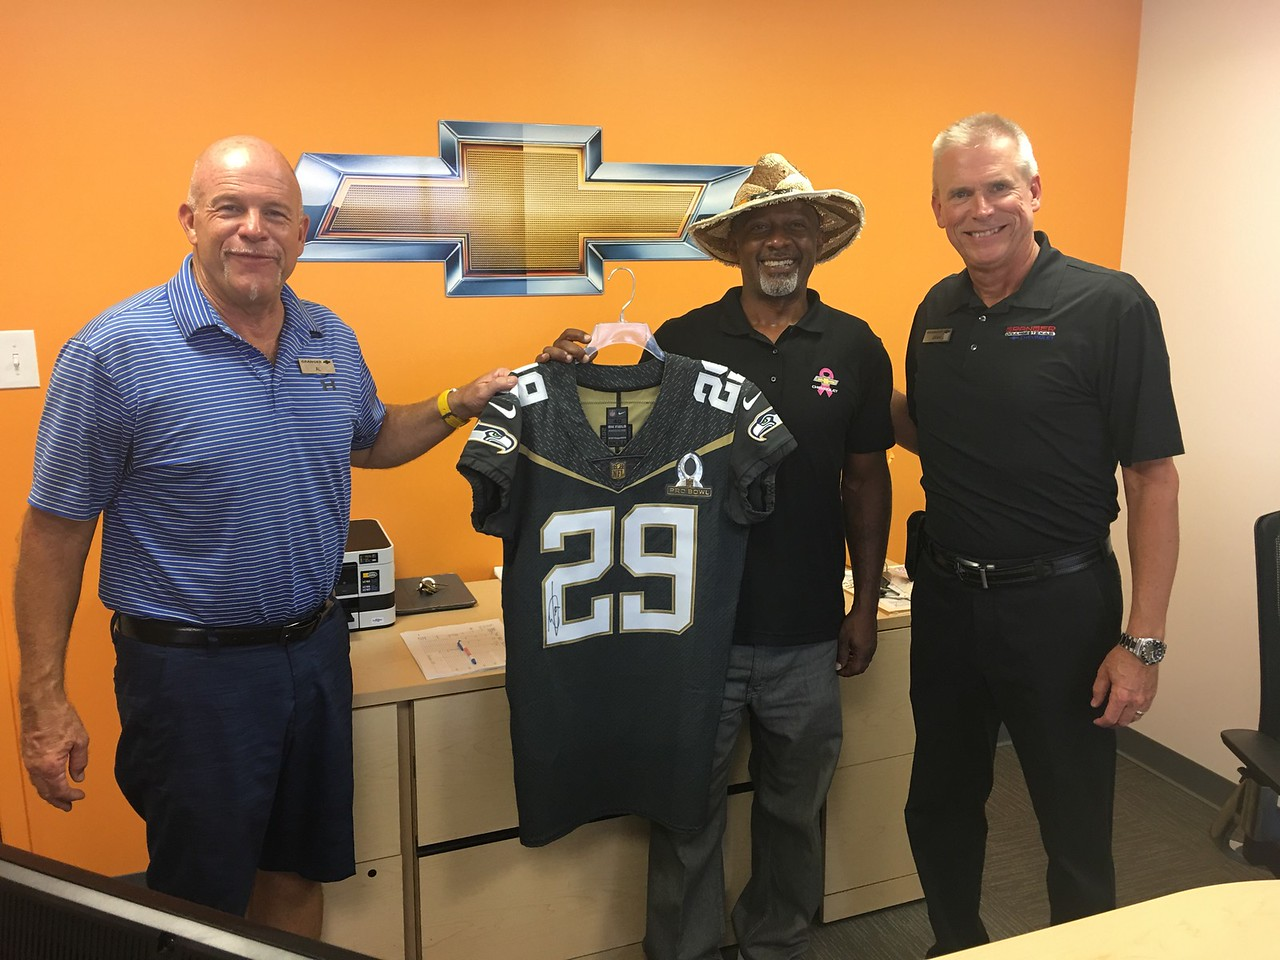 Granger Chevrolet presents Jimmy Britt Chevrolet with an Earl Thomas jersey